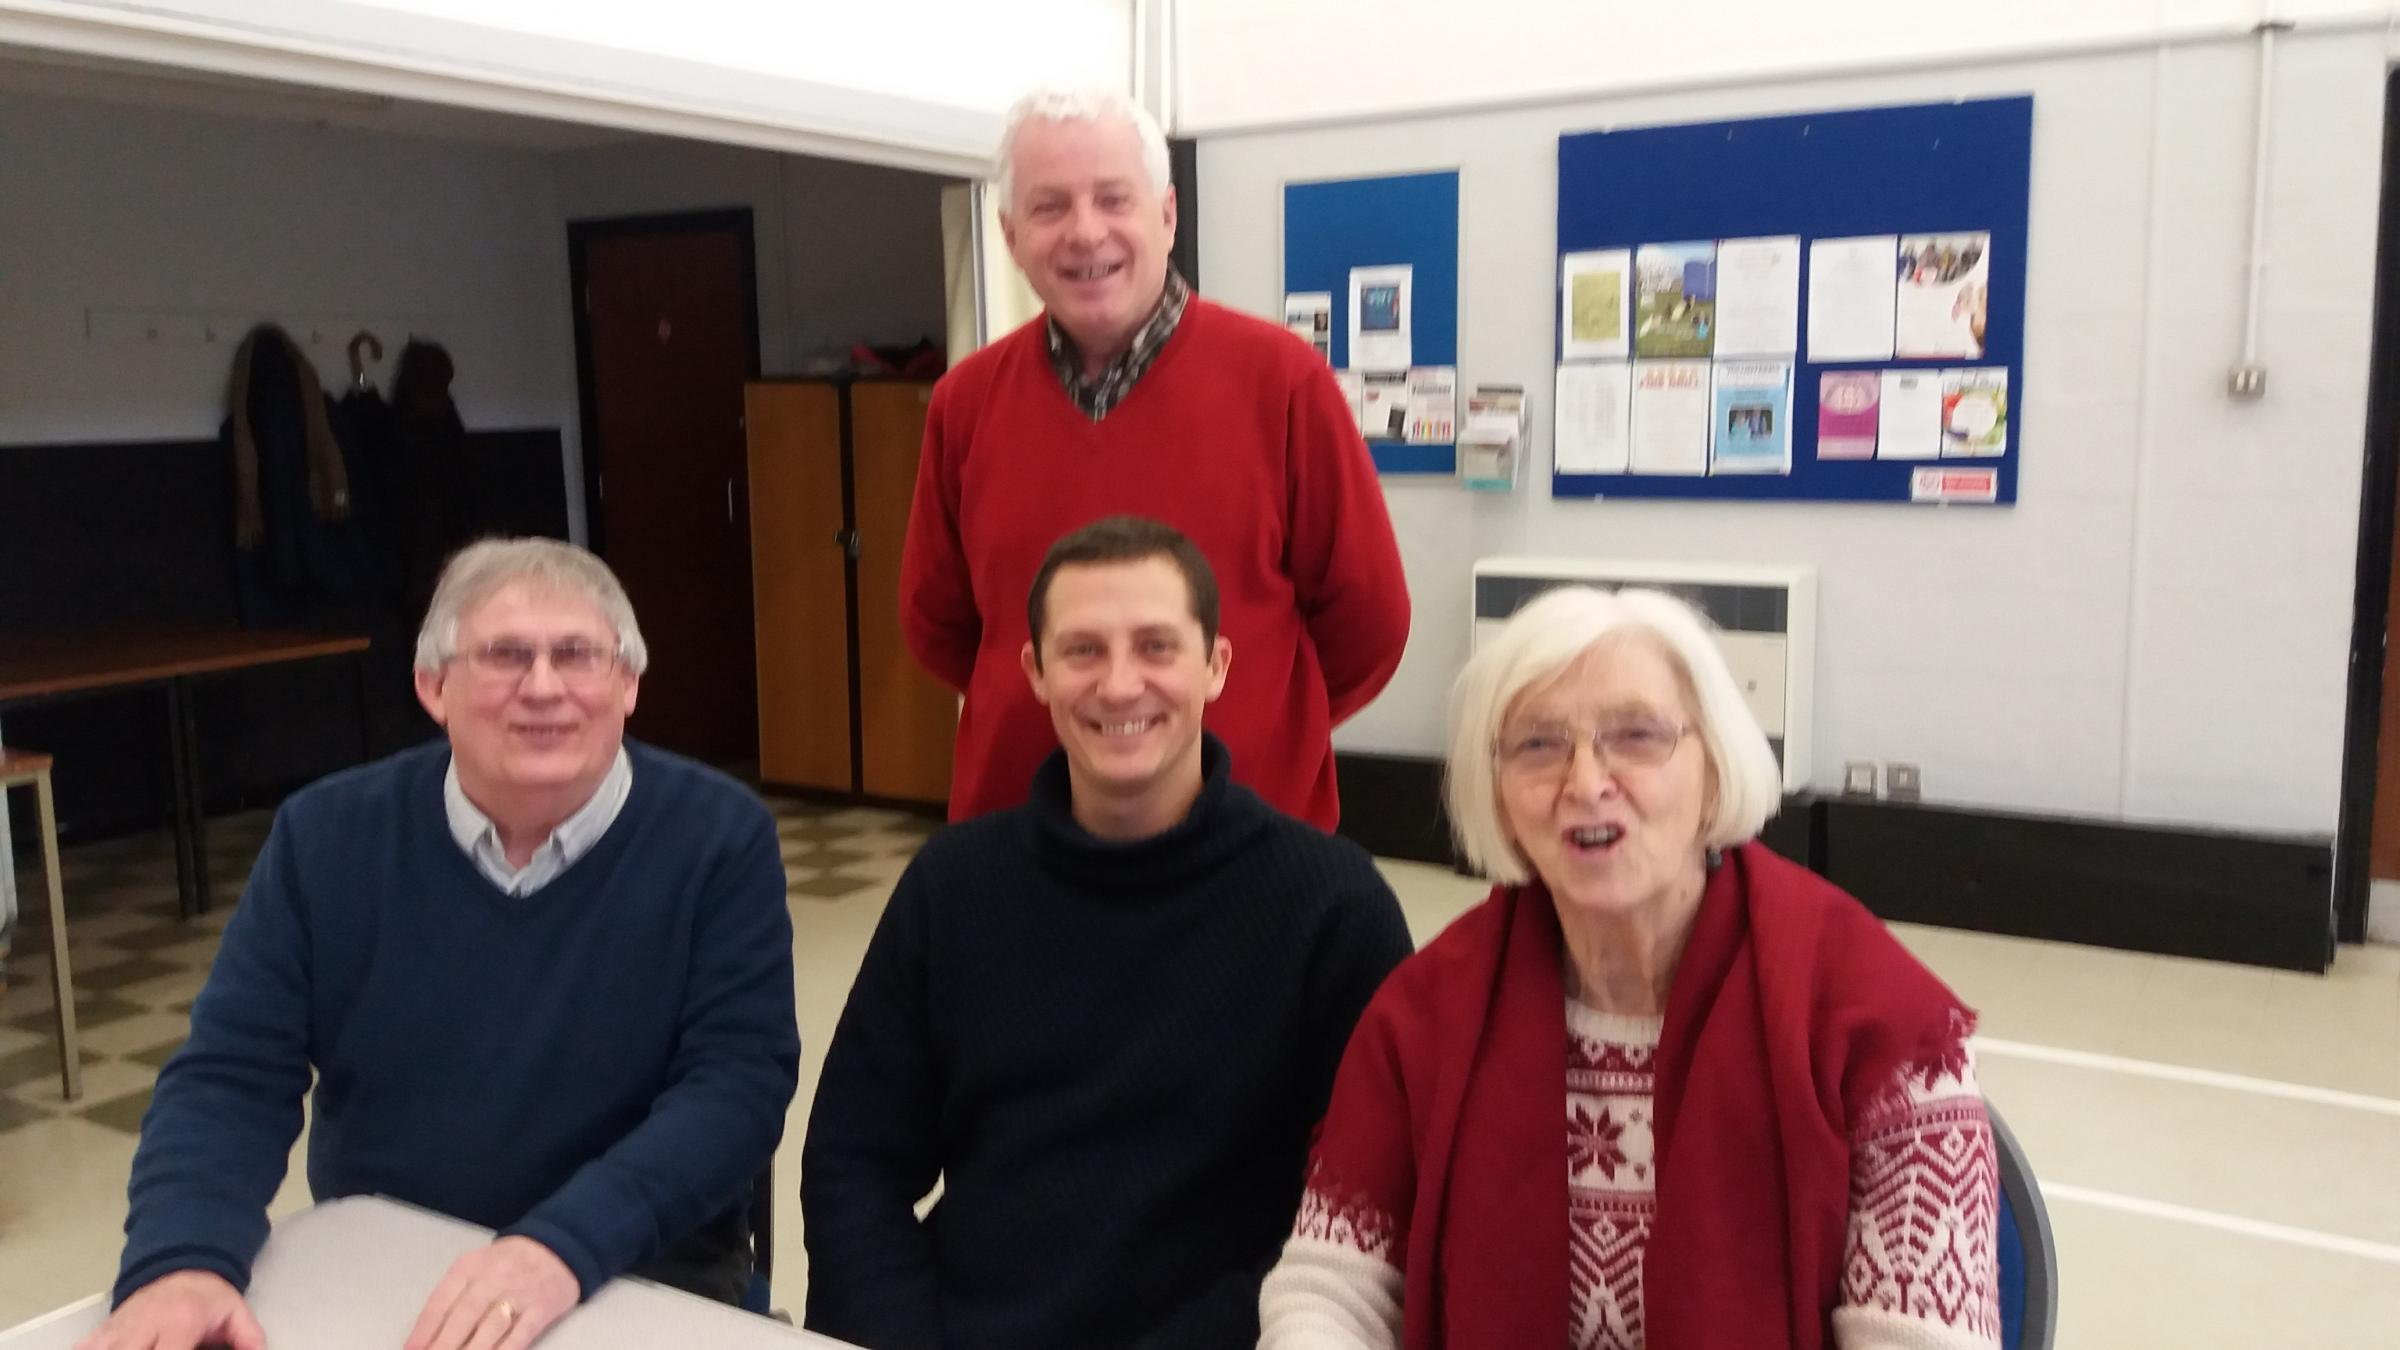 Artist in Residence Tom Goddard with community Councillors John Fanshaw, Val Hartrey and Chris Franks